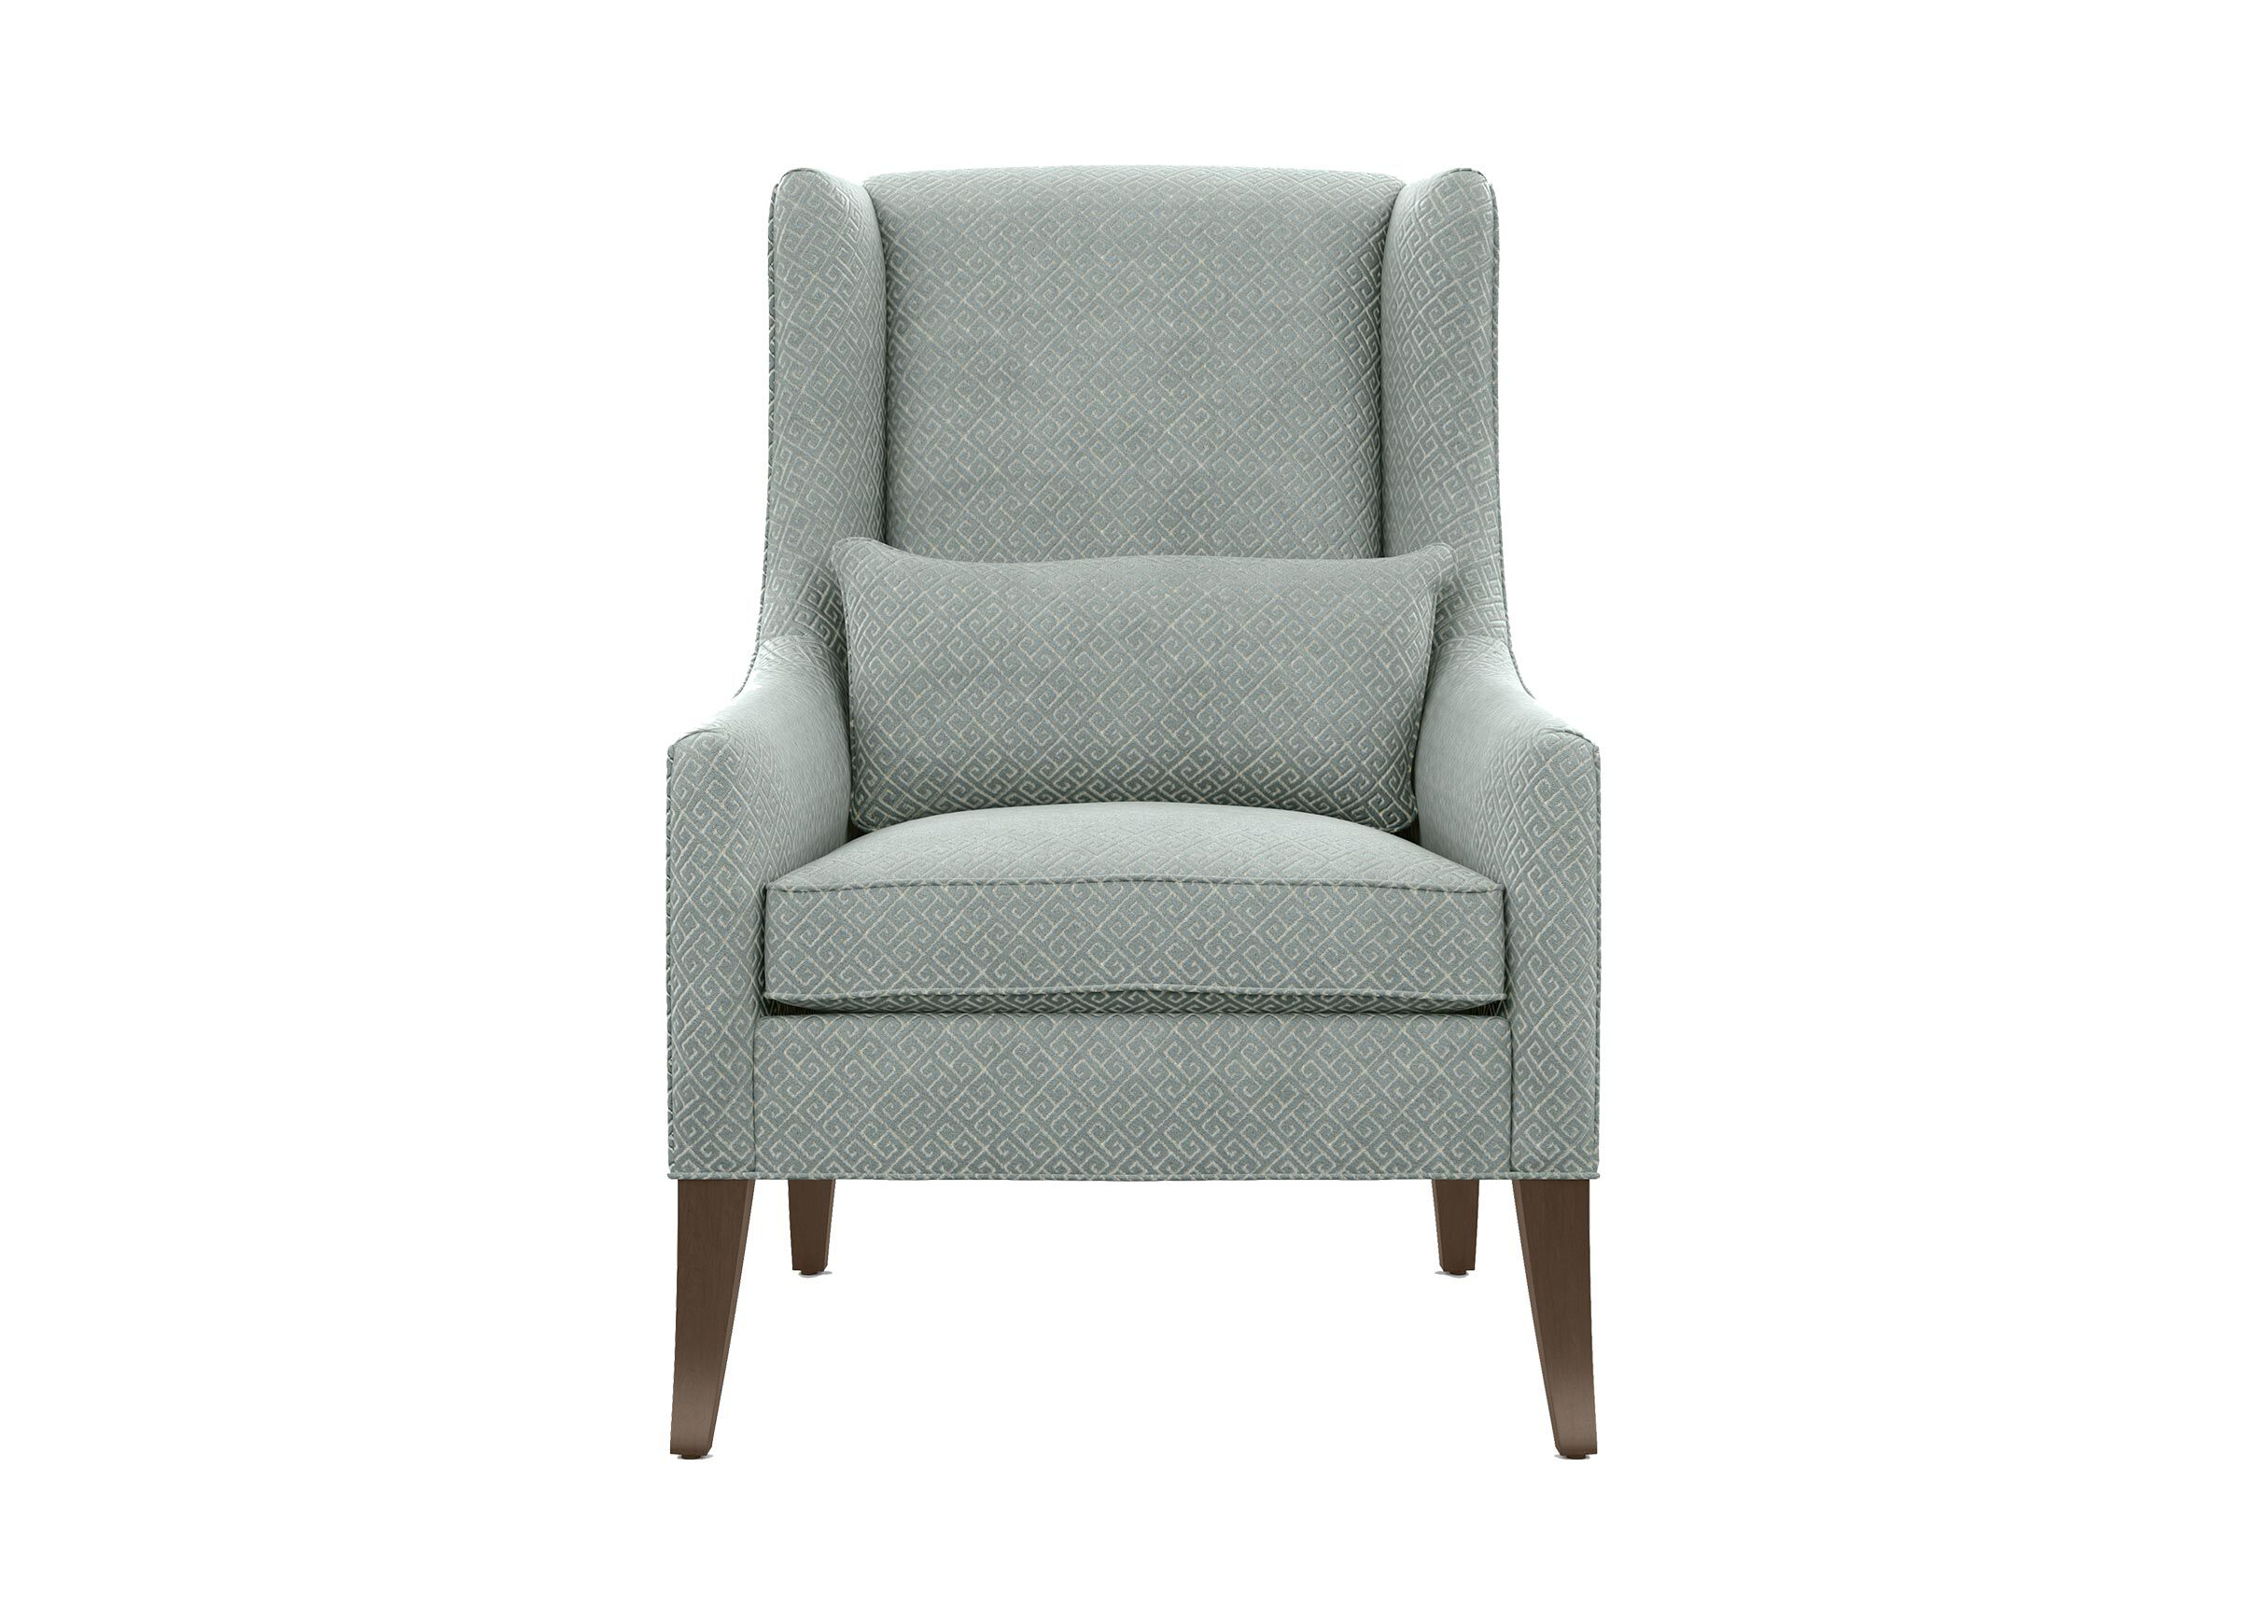 ethan allen wingback chairs bedroom the range lovingheartdesigns chaises saveenlarge